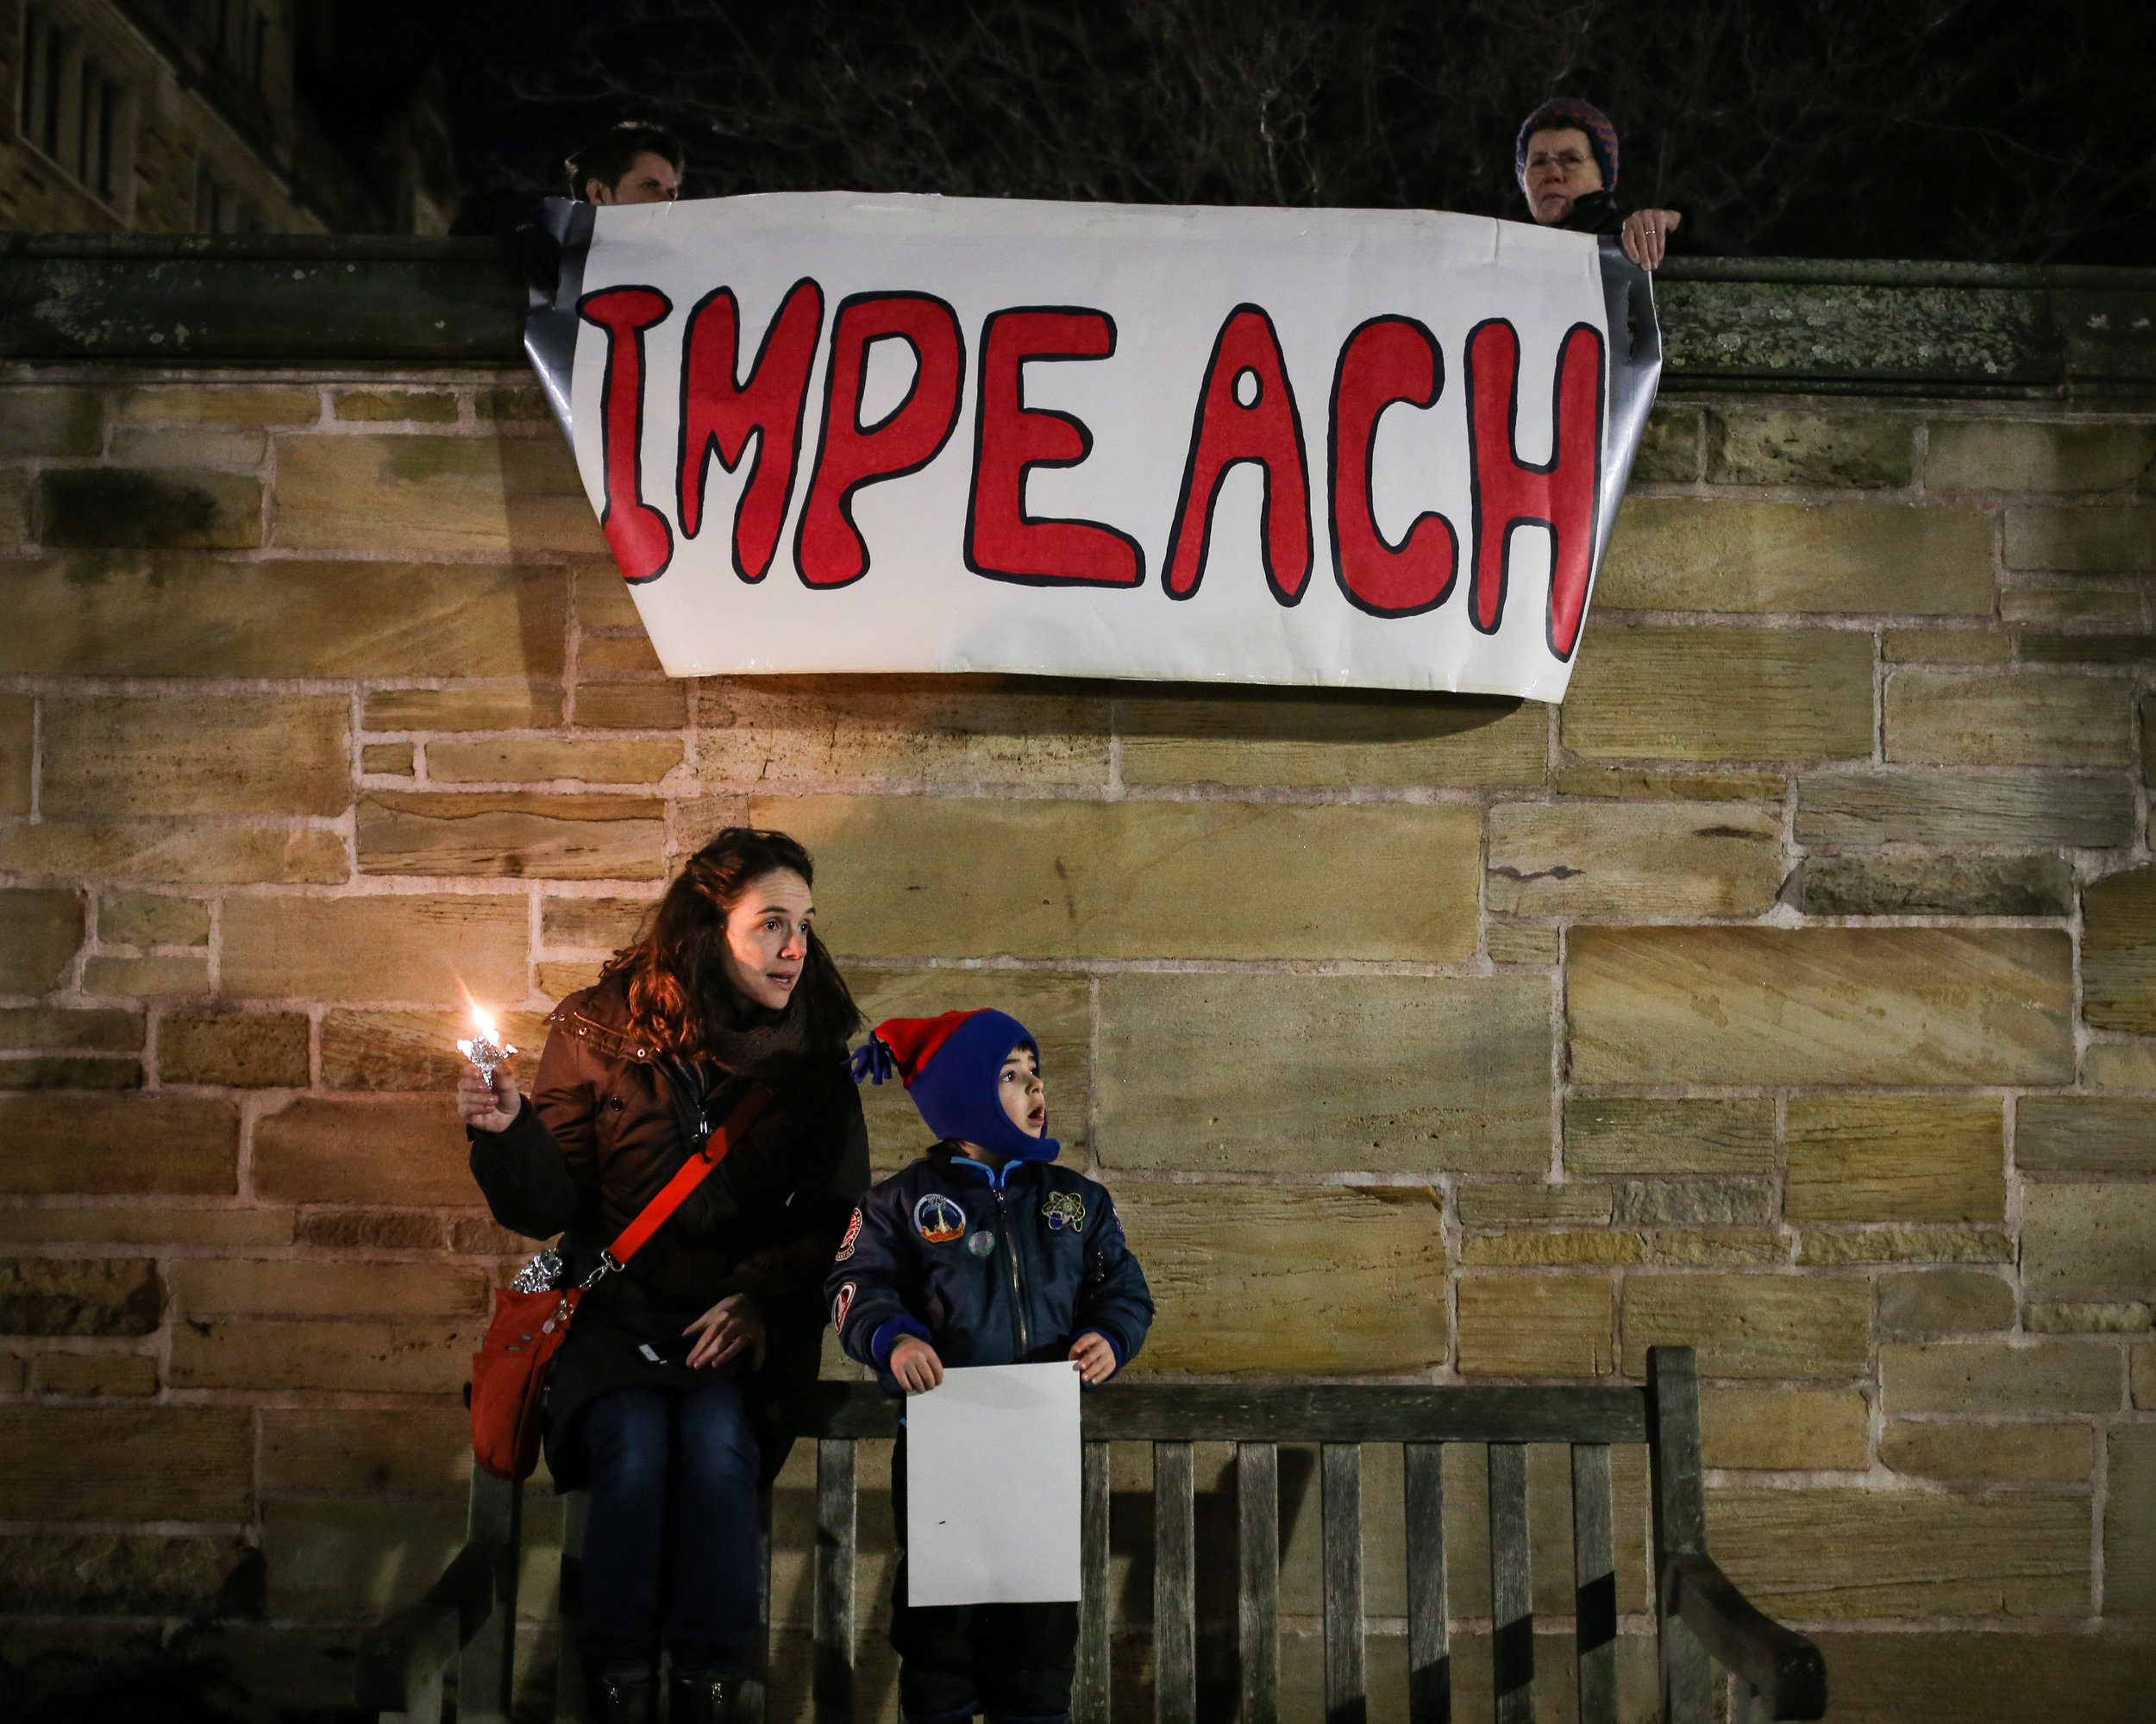 New Haven, Connecticut - January 29th, 2017: A vigil is held for immigrants and refugees following president Trump's executive order to ban specific countries from entering the United States.